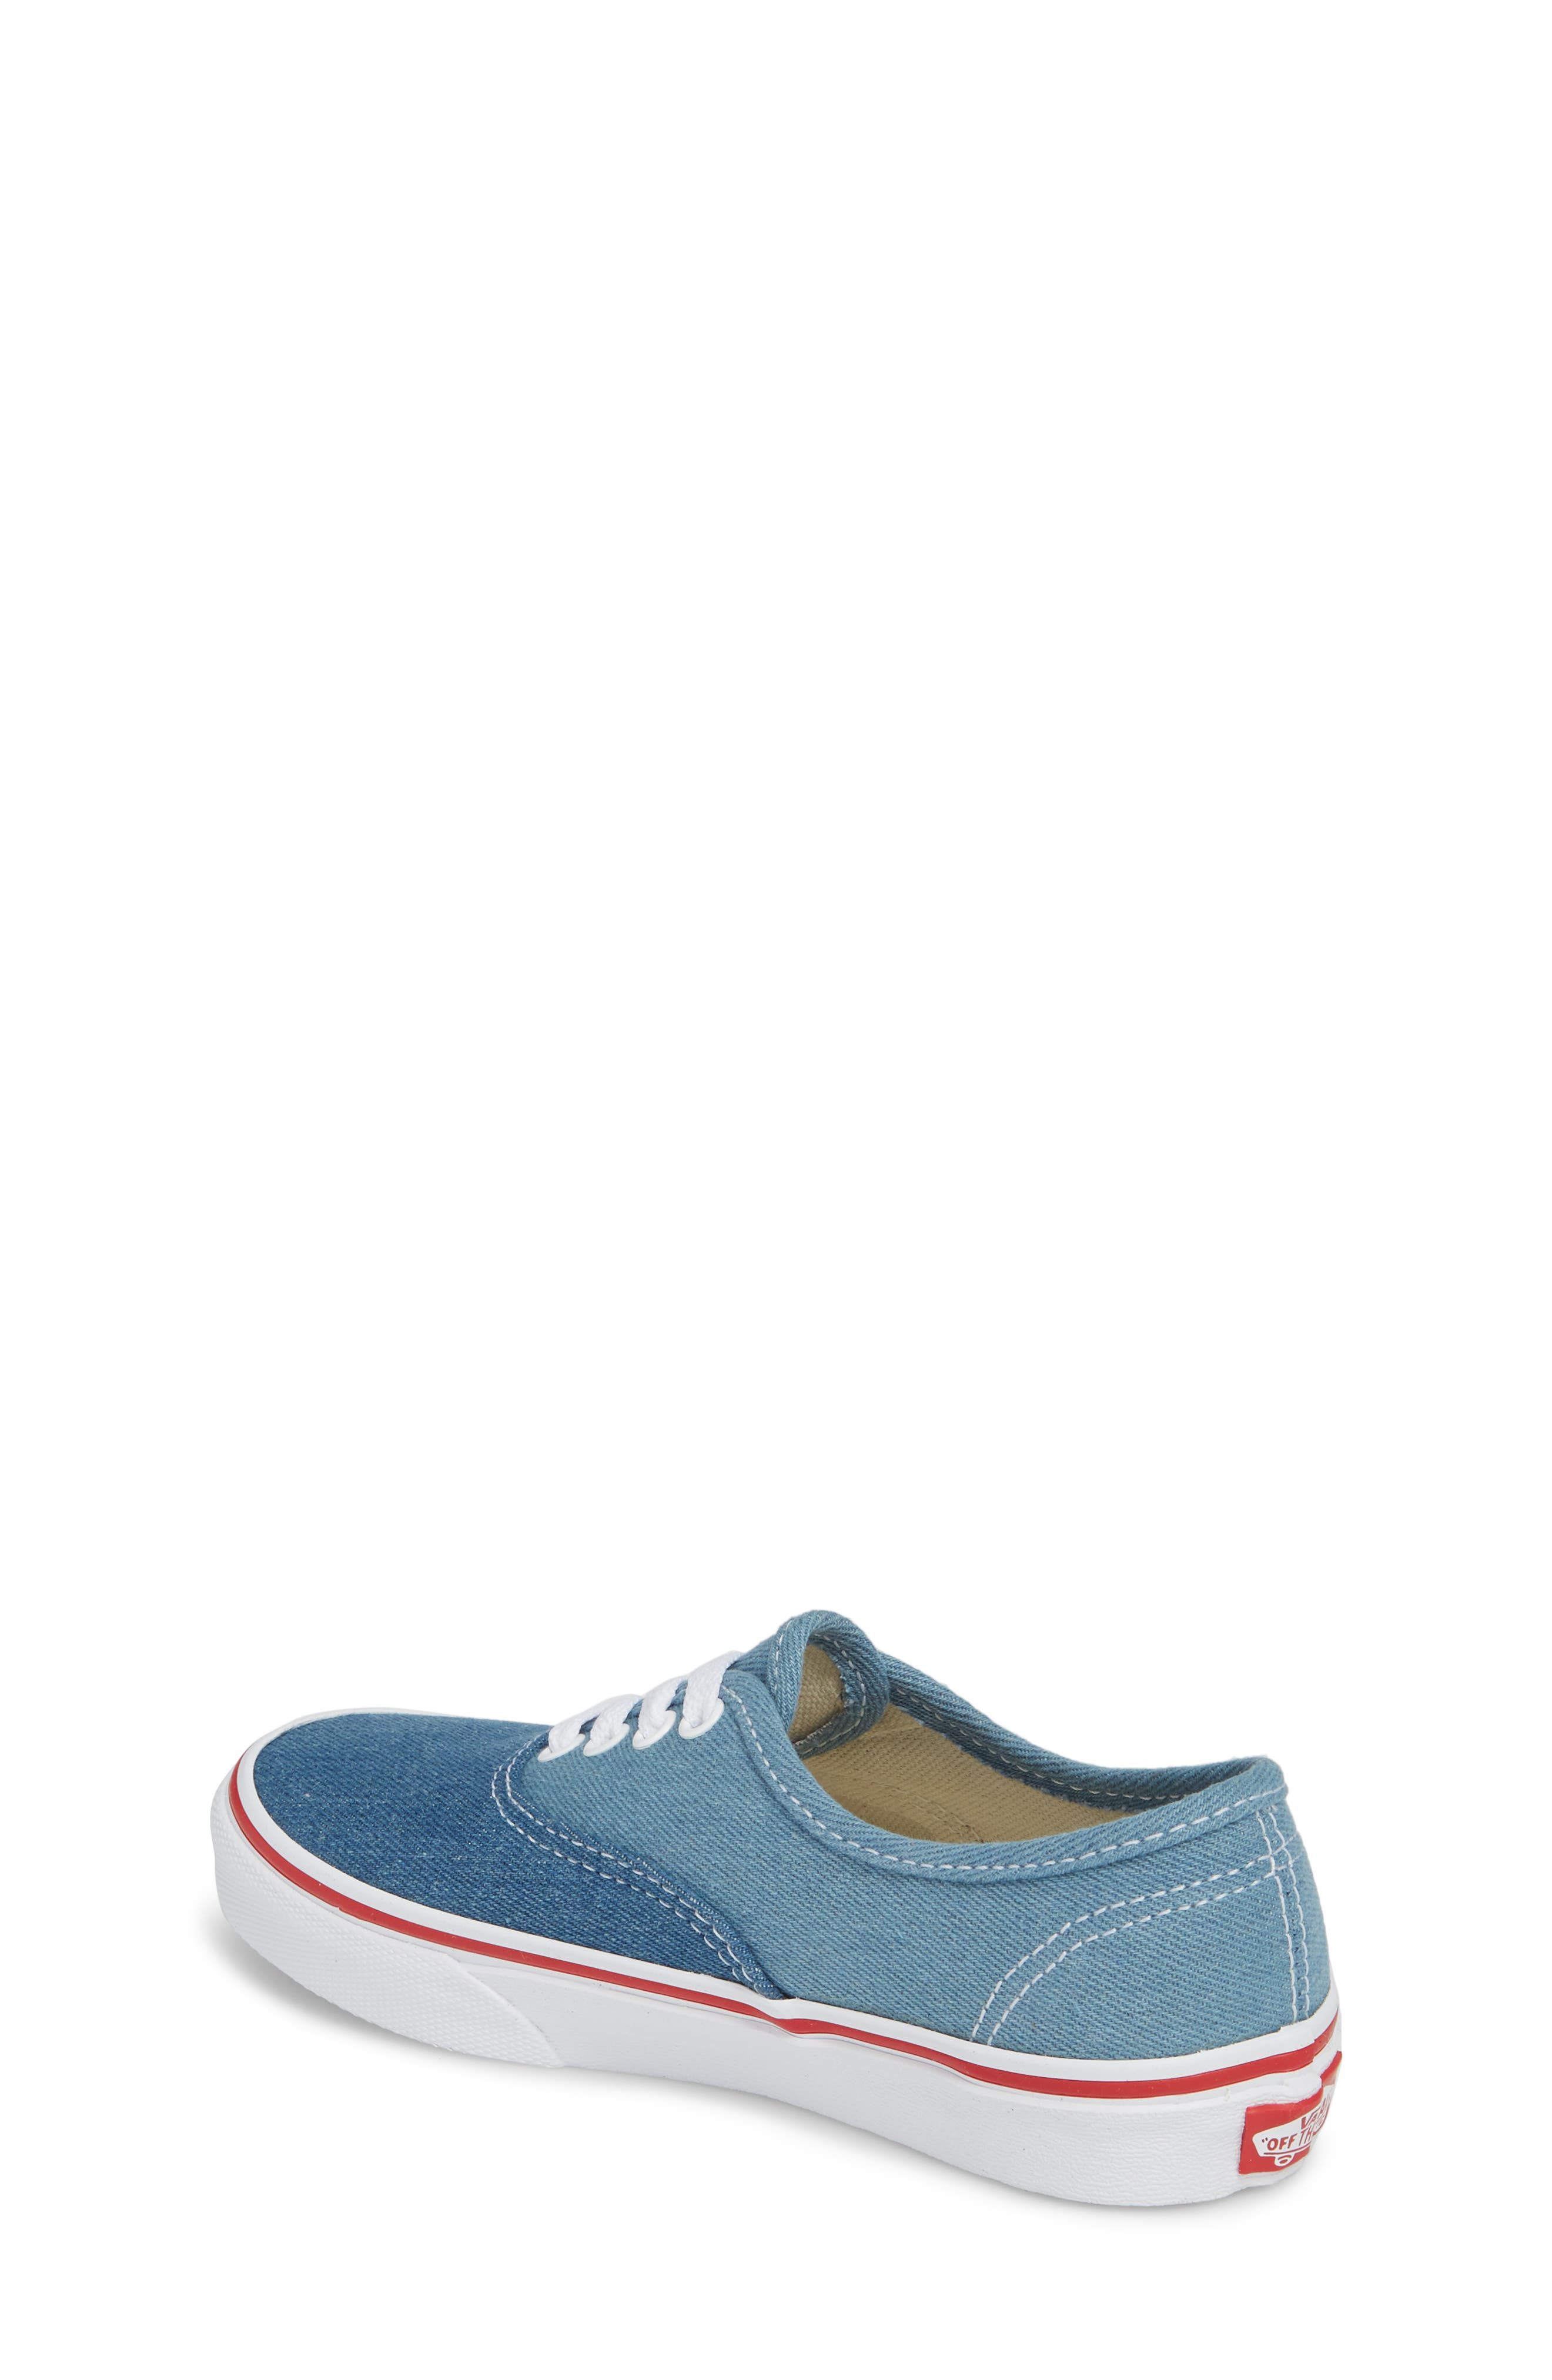 Authentic Sneaker,                             Alternate thumbnail 2, color,                             Blue/ White Denim Two-Tone